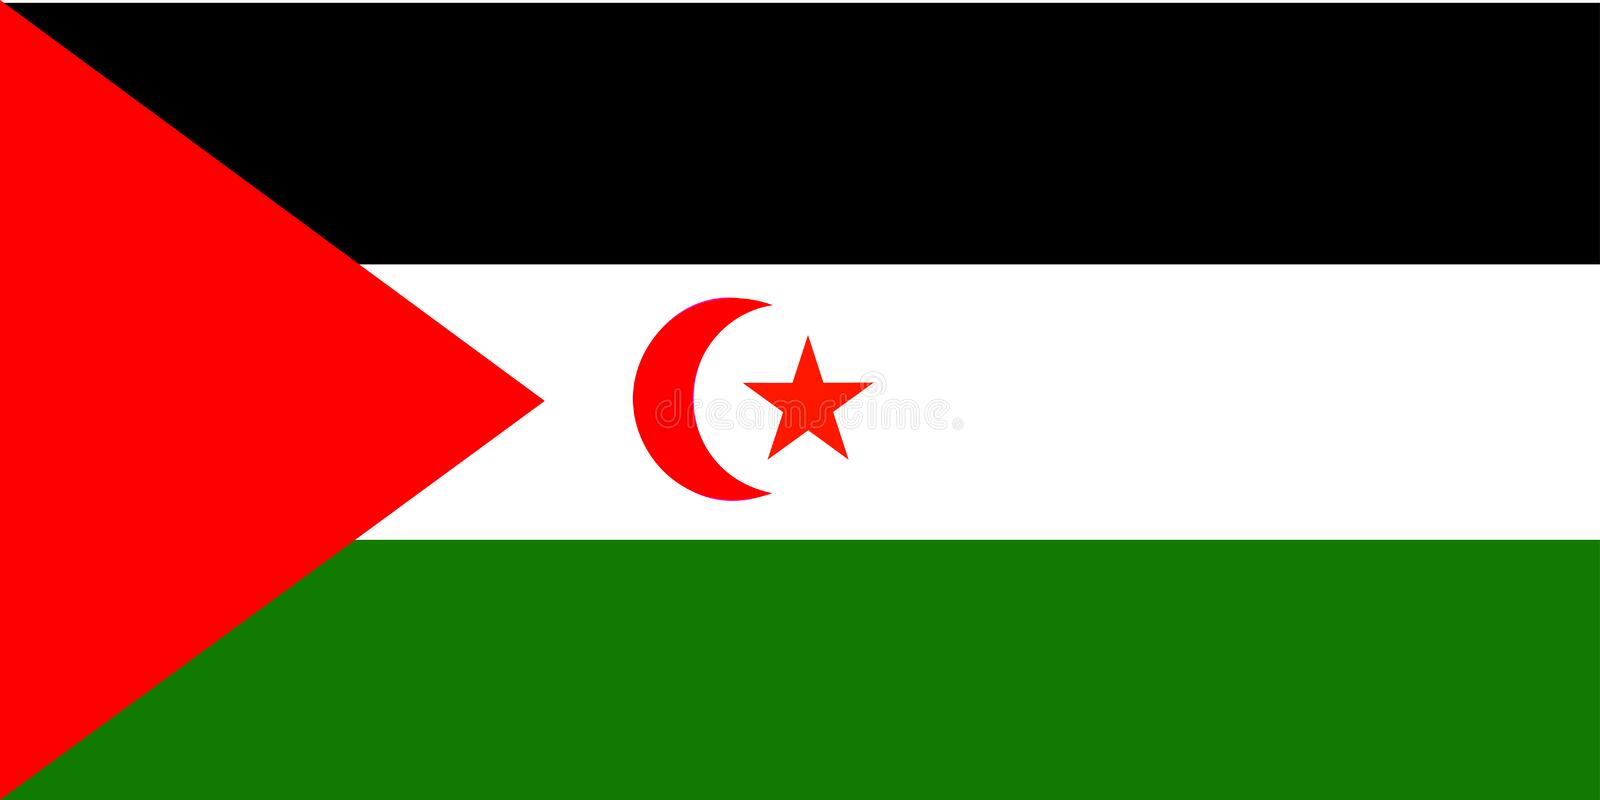 Flag of Western Sahara royalty free illustration